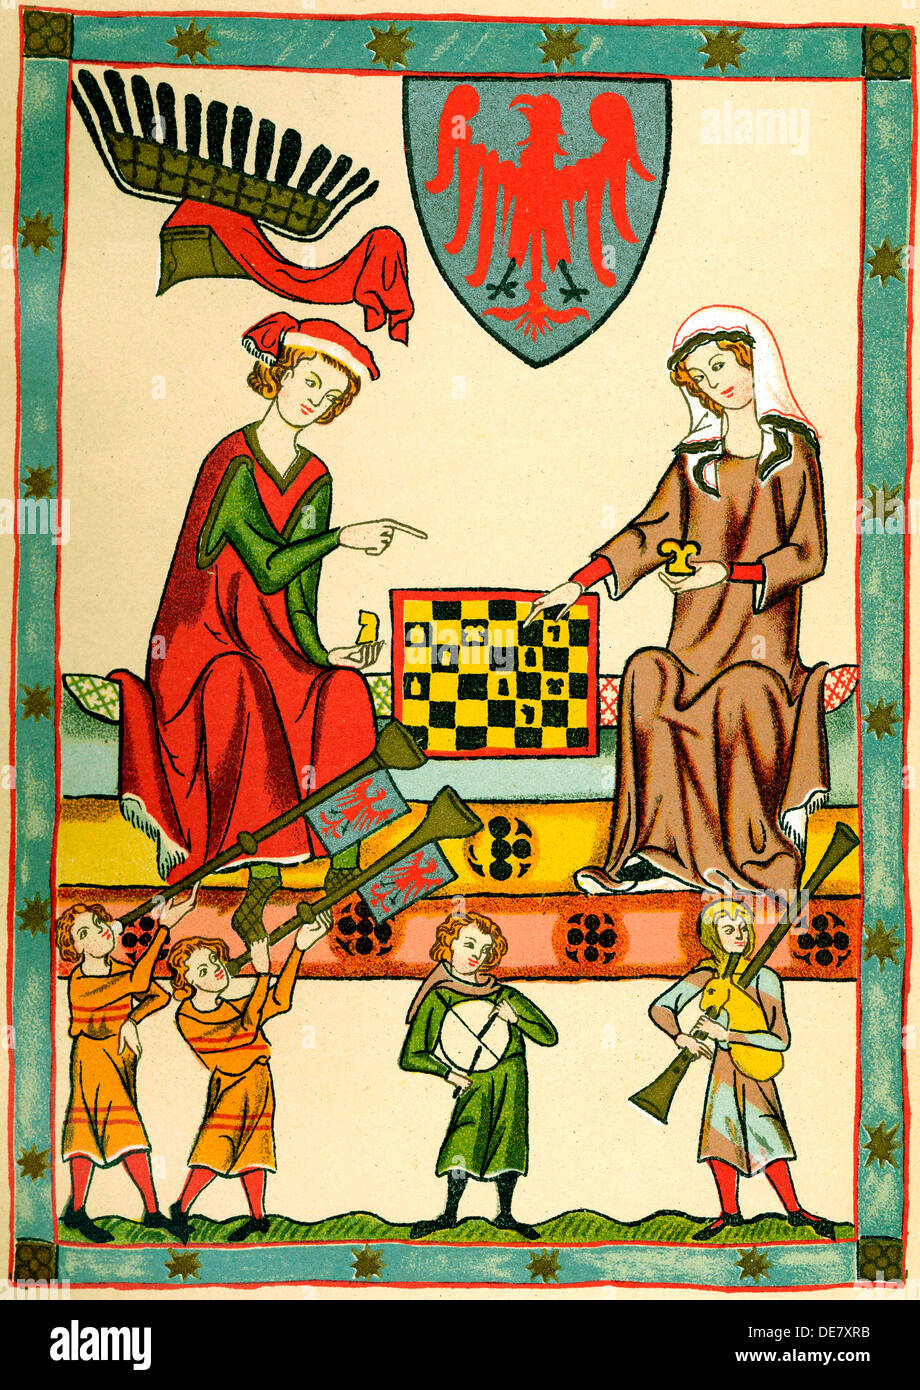 Margrave Otto IV of Brandenburg Playing Chess (From the Codex Manesse), c1300. - Stock Image